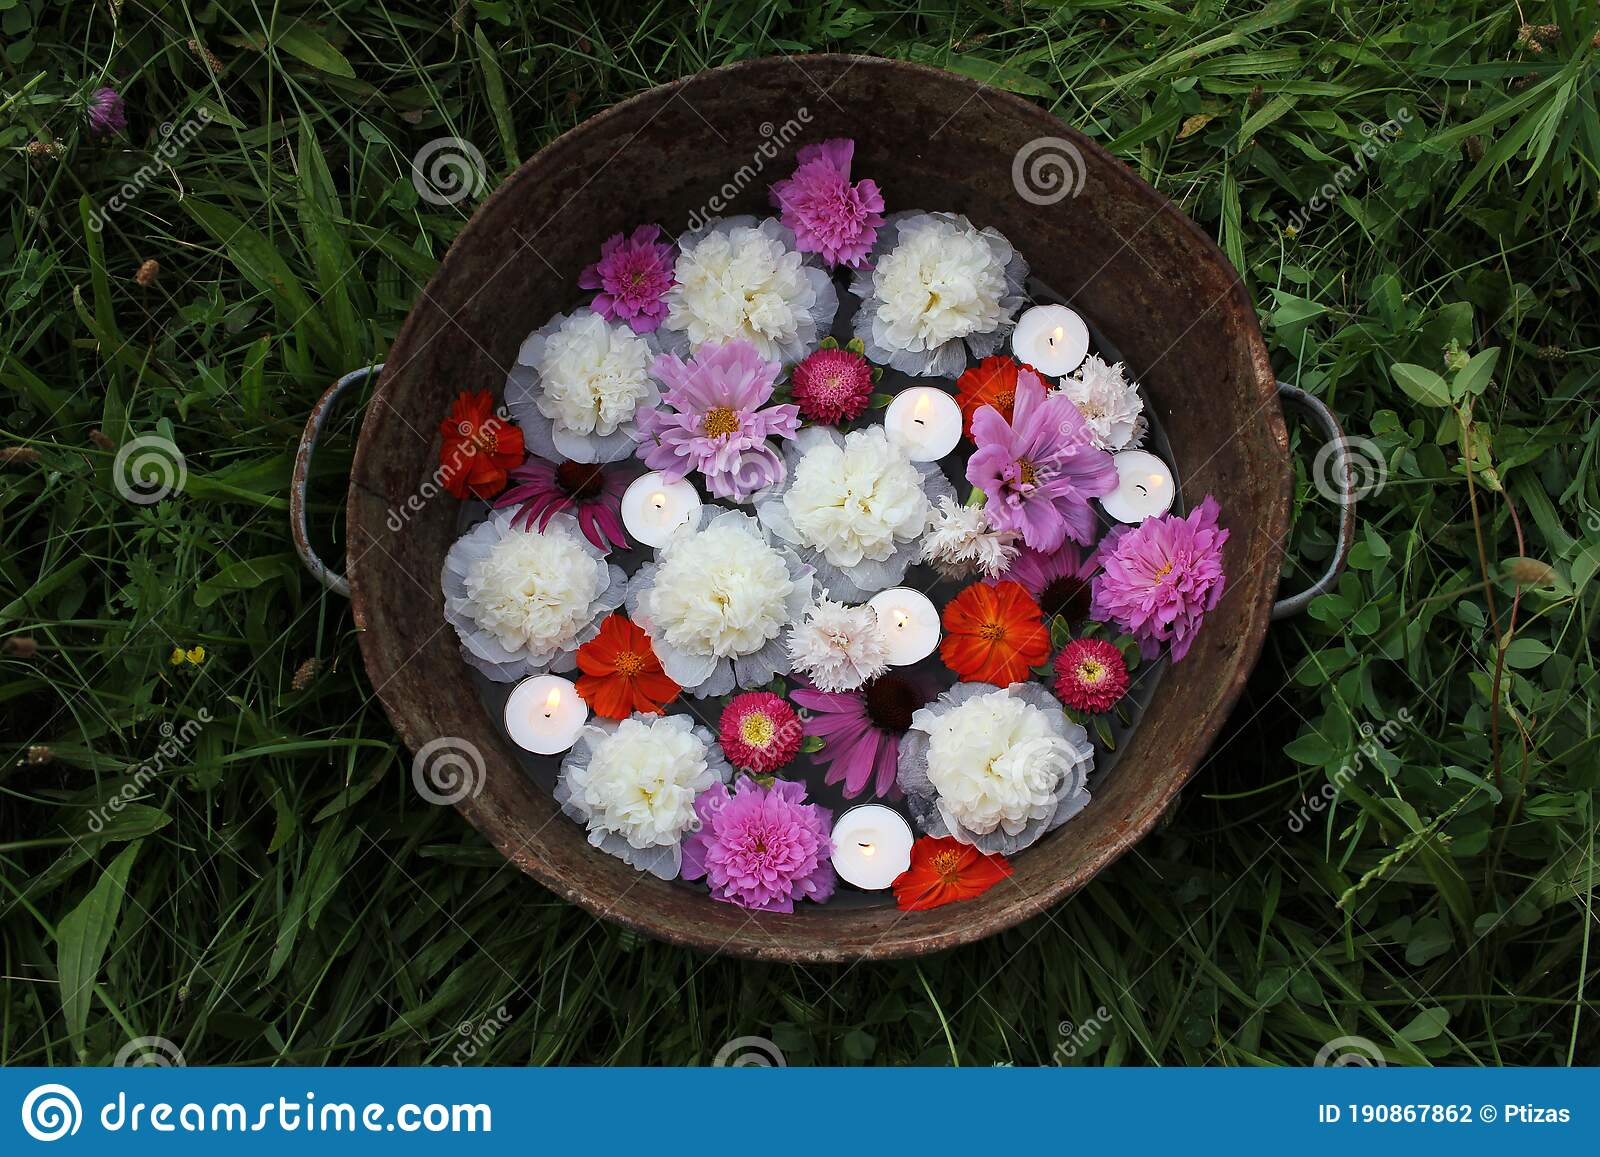 Floating Candles And Flowers In Old Zins Basin Summer Garden Party Outdoor Decor Ideas Stock Photo Image Of Beautiful Floating 190867862